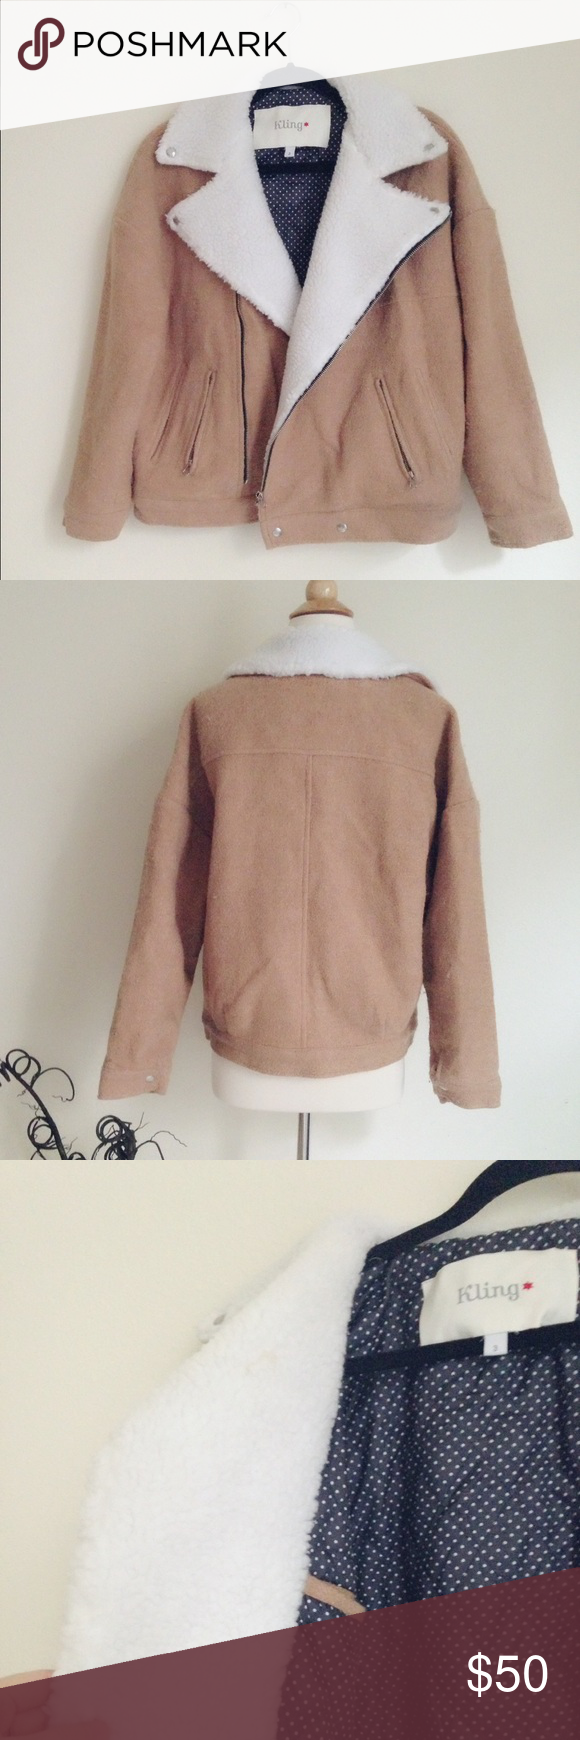 """Kling Tan Wool-Blend Freddie Jacket Bomber jacket style, shell 30% wool, 50%poly, 20% viscose. Lining 100% poly. Good quality and heavy. Fabric doesn't feel soft, but a little coarse.    Two front pockets, one inside pocket. European size 3, best fits US size S/M. Chest 21 1/2"""", length 24"""". Only been worn once, in good condition. ✅offer welcome 🚫no trade Kling Jackets & Coats"""